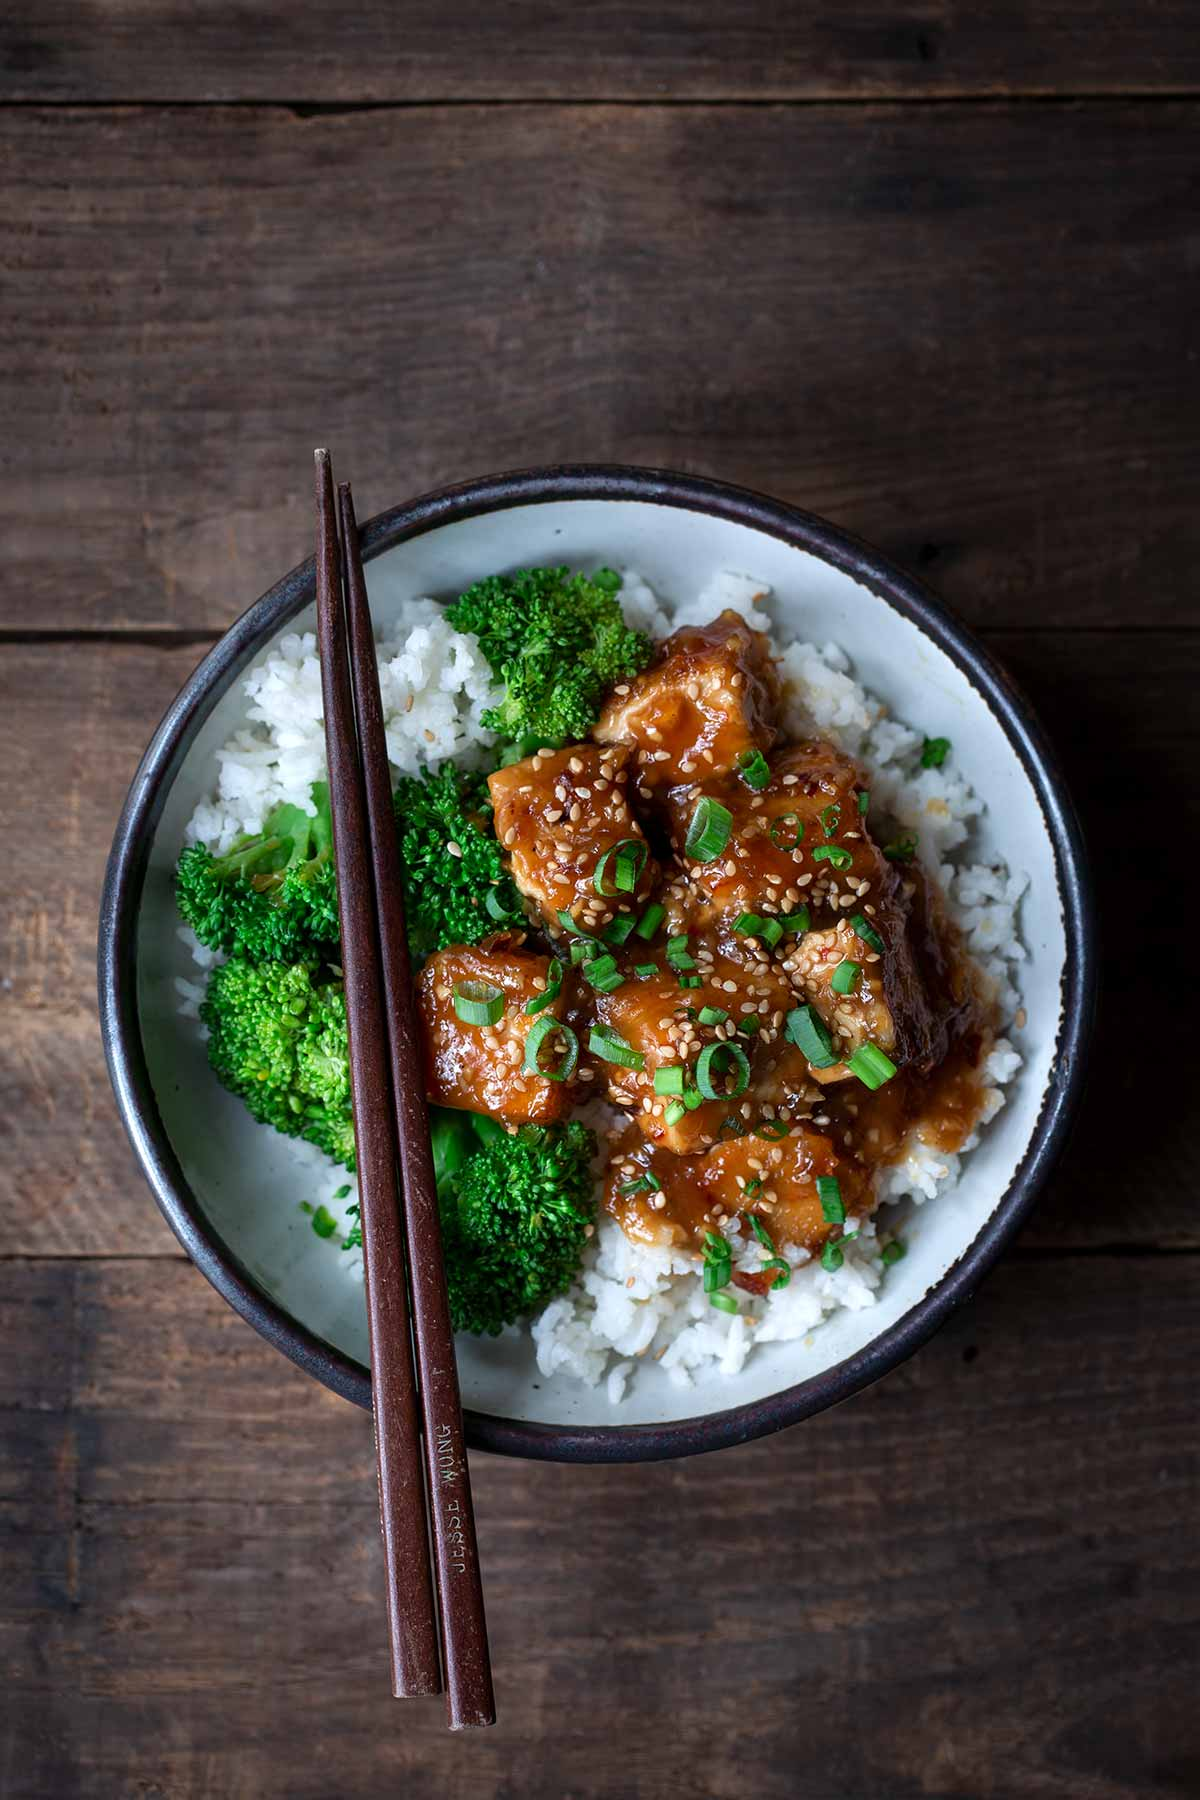 General Tso's Tofu with chopsticks